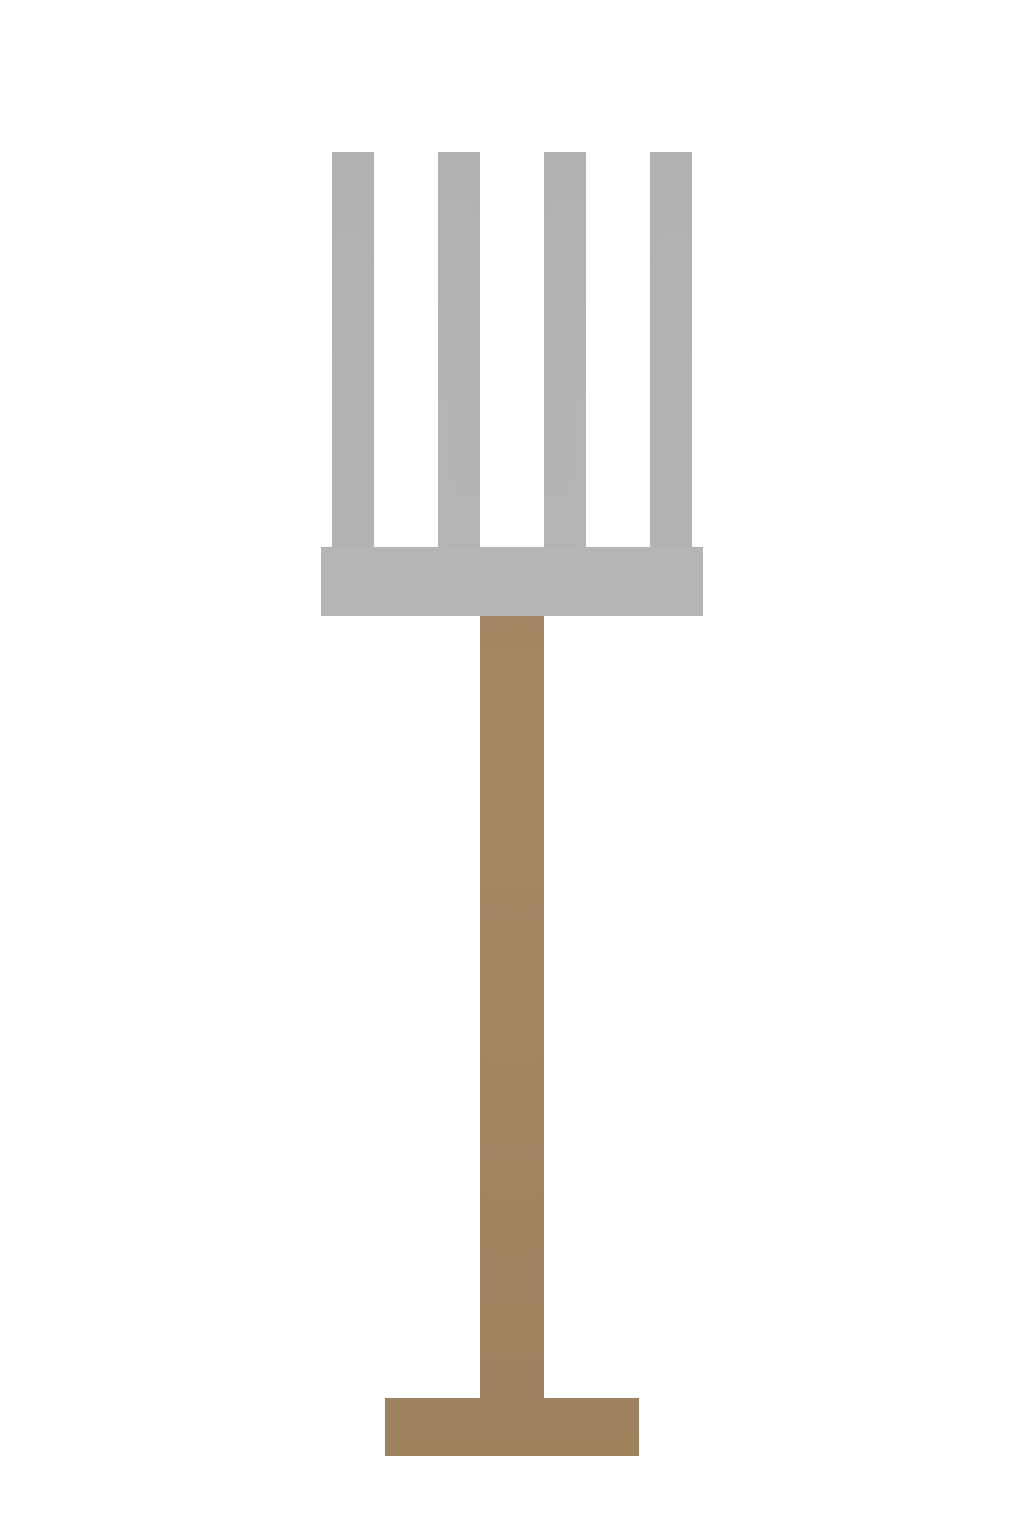 Picture of Unturned Item: Pitchfork